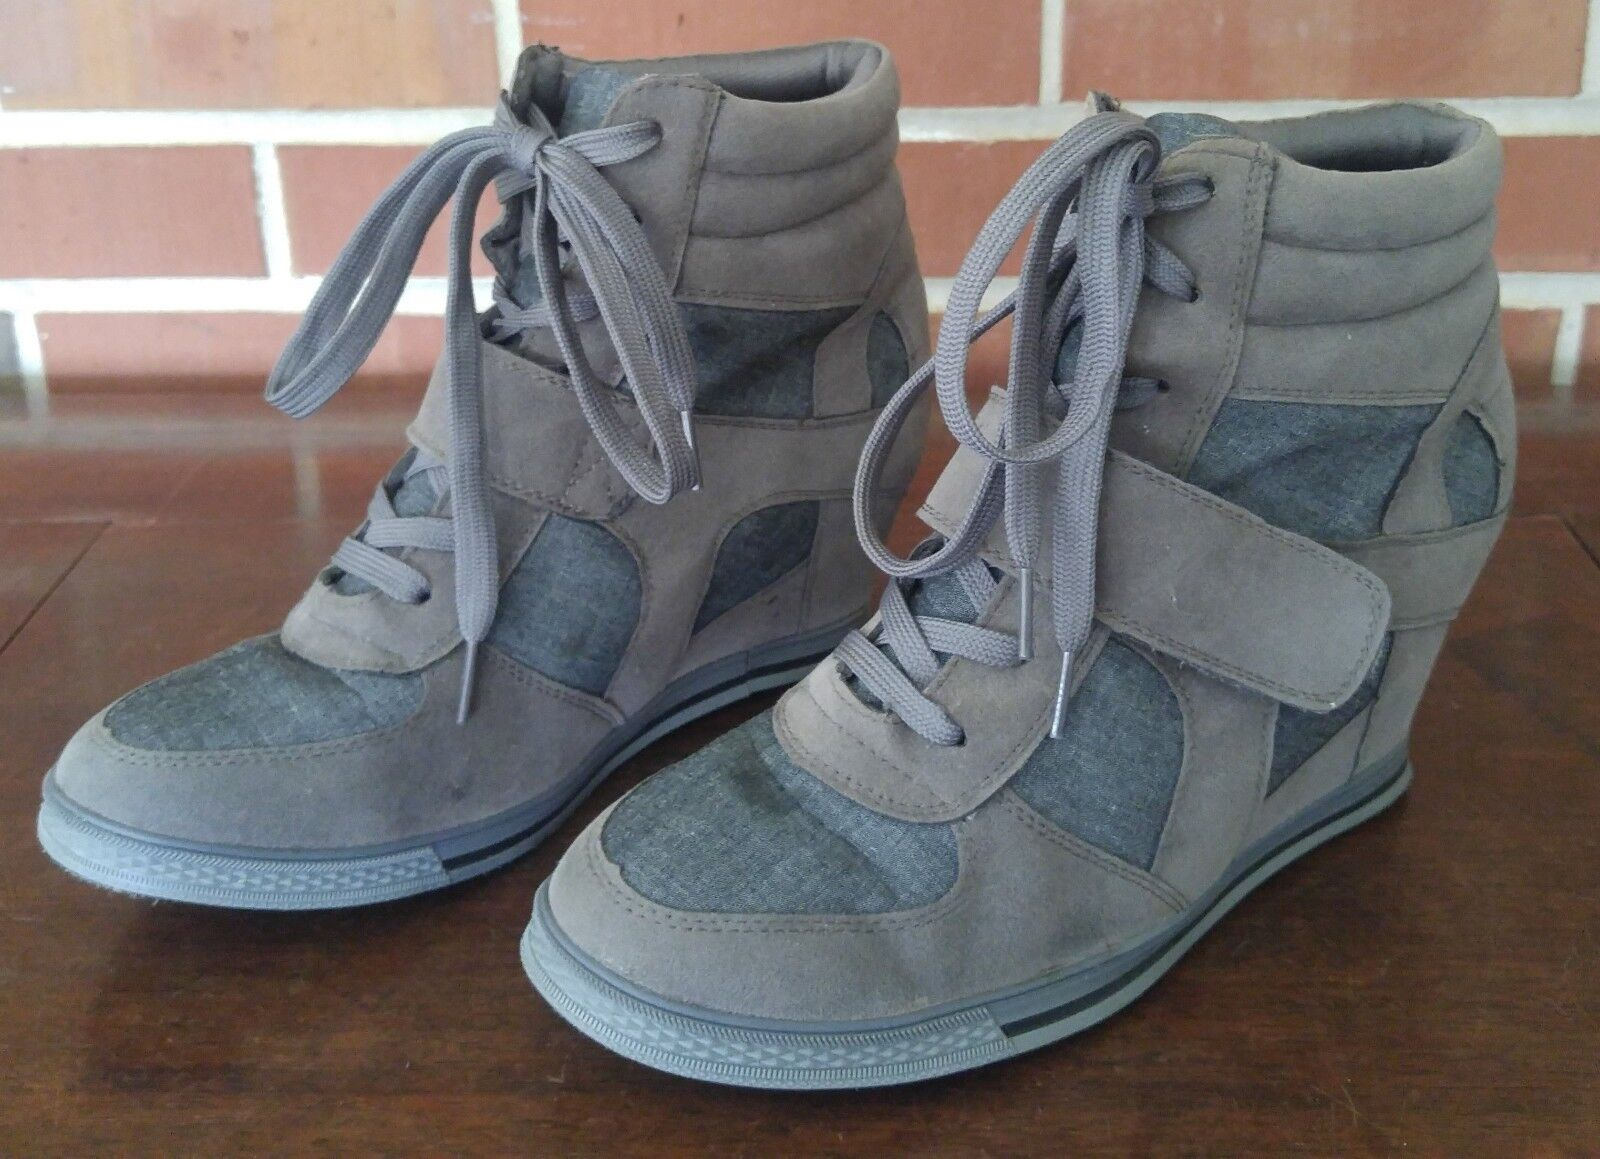 Bucco Capensis Womens Ankle Boot Grey Suede Size 9